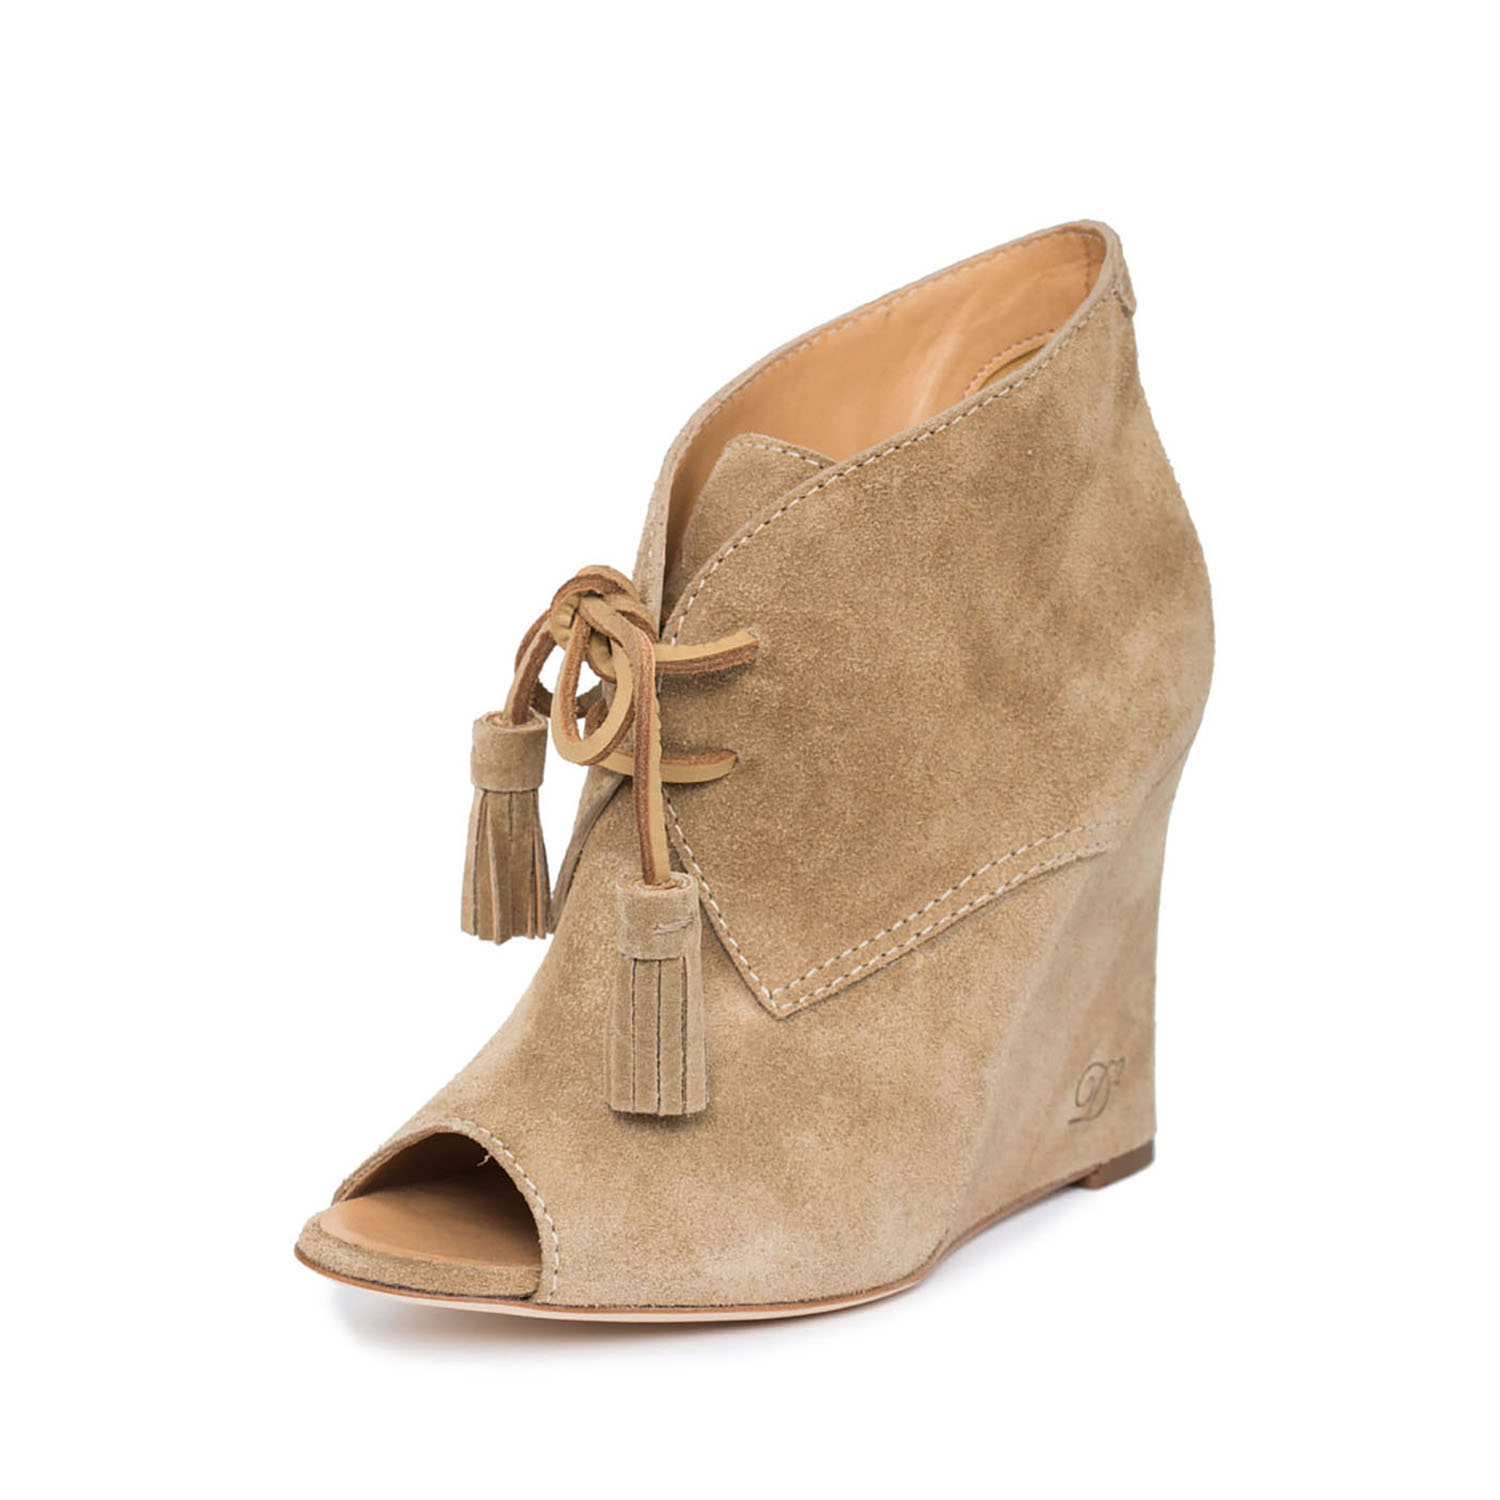 Dsquared2 Women Nude Suede Leather Peep Toe Wedge Heel Lace-Up Booties Shoes US 10 EU 40